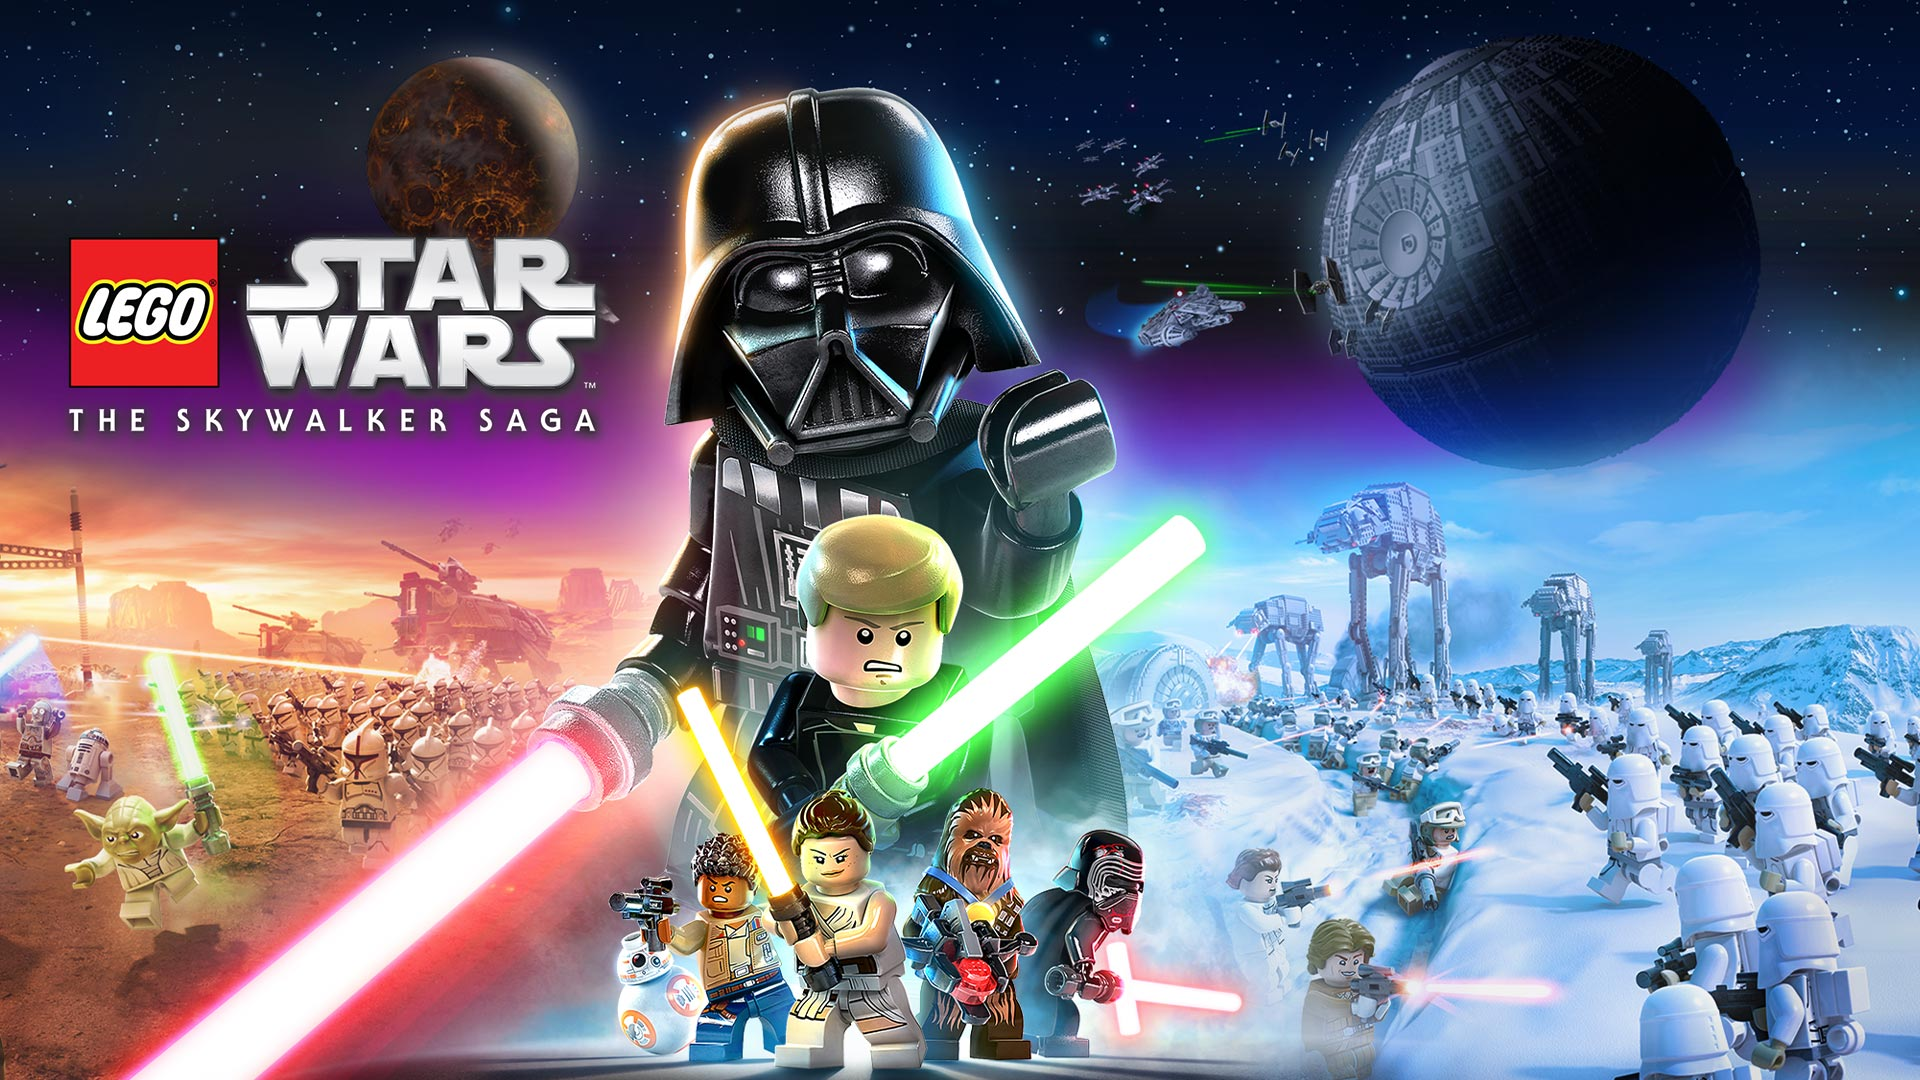 lego-star-wars:-the-skywalker-saga-might-finally-be-getting-a-release-date